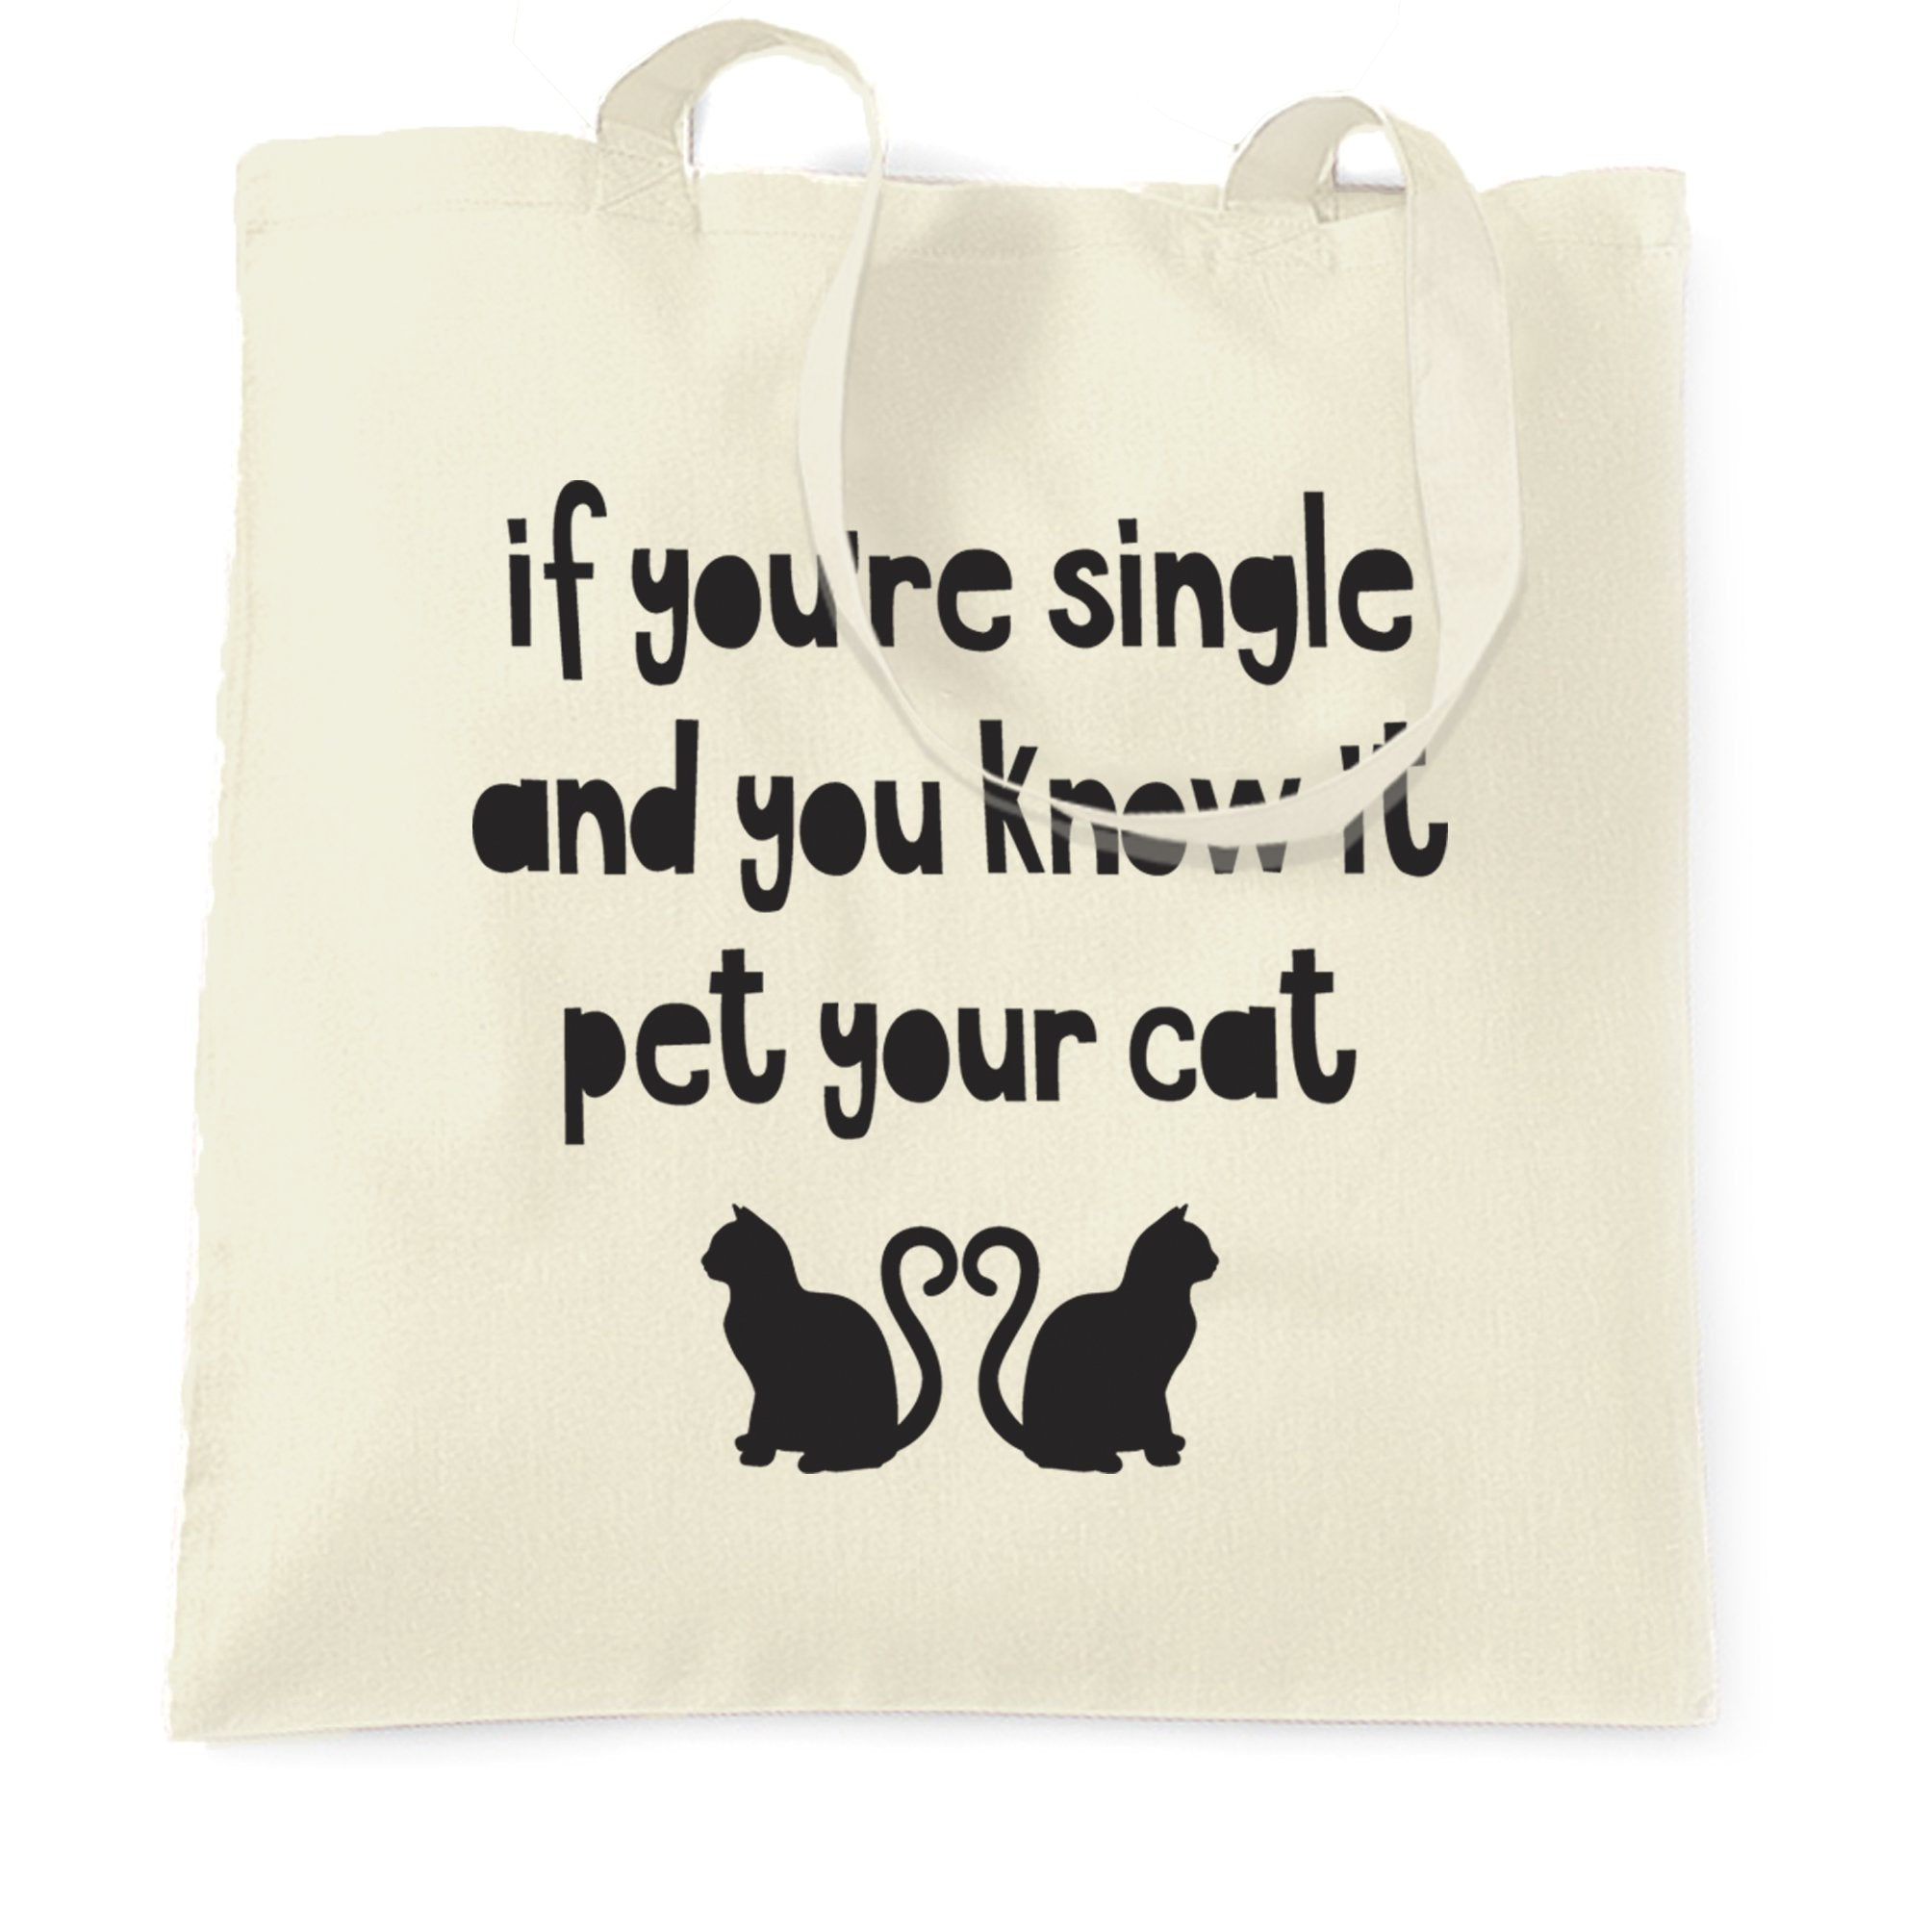 Valentines Tote Bag Single And You Know It Joke